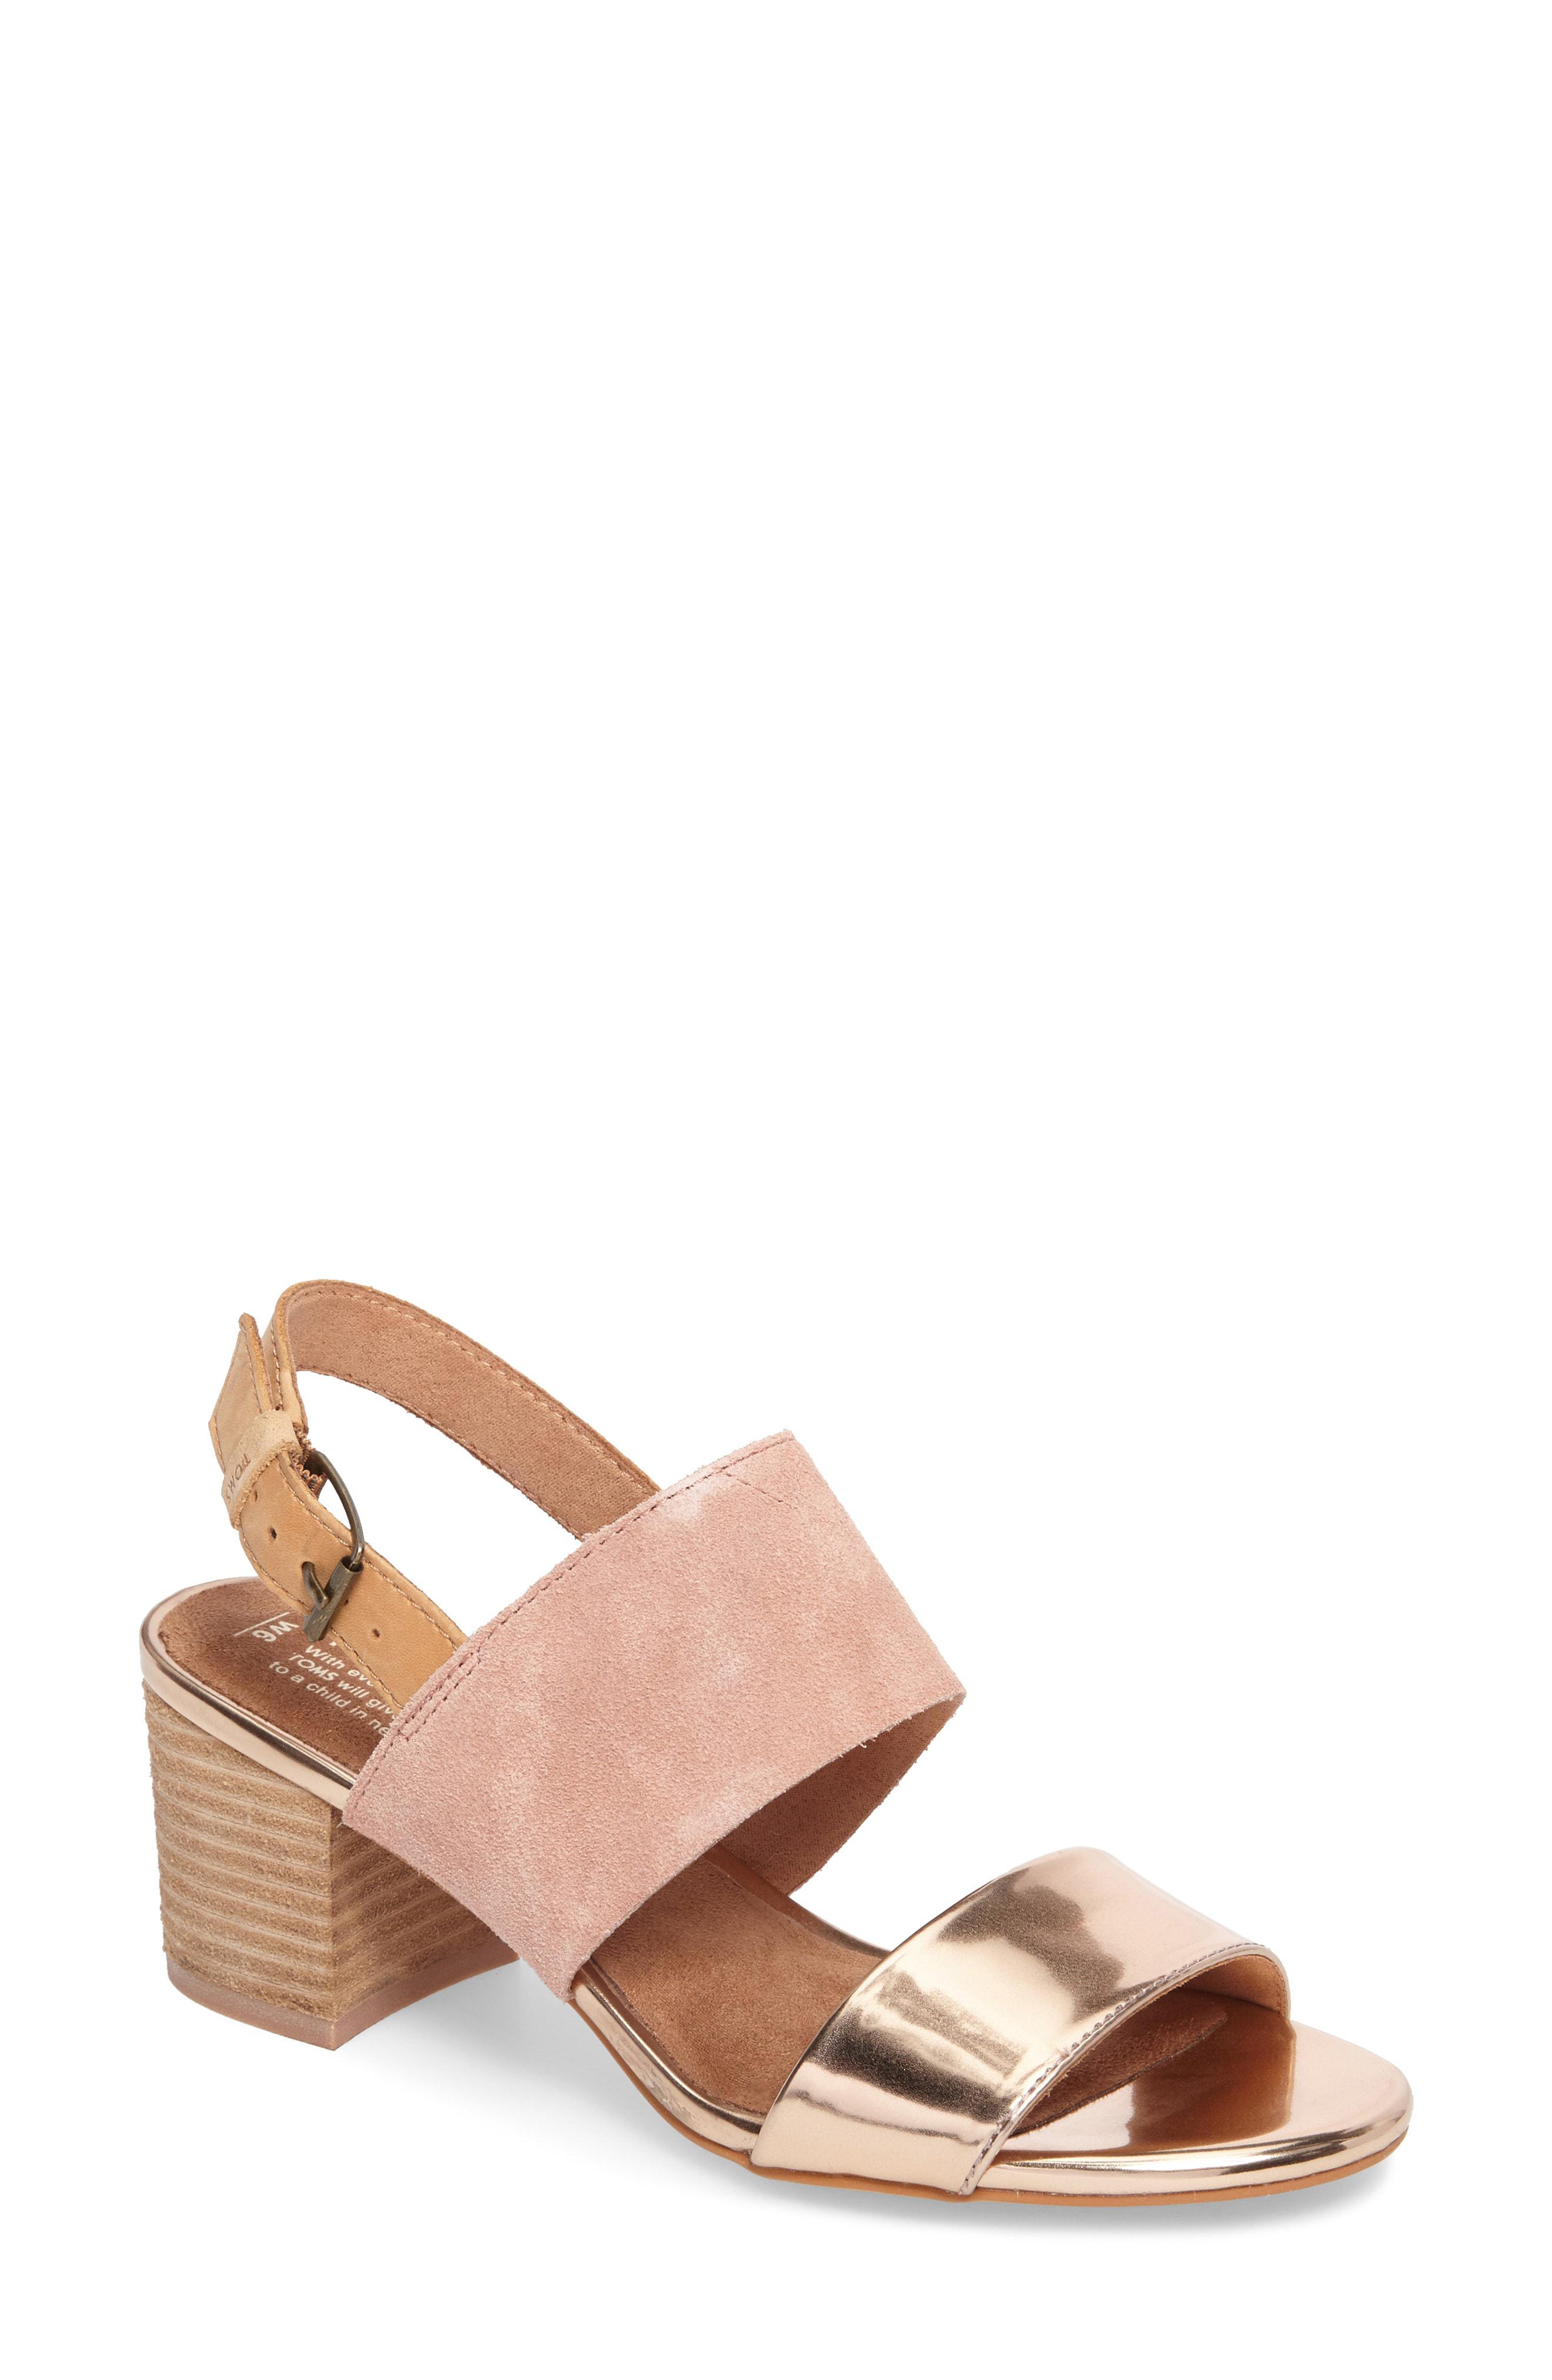 7f8374688f8 Toms Poppy Sandal in Pink - Save 10.606060606060609% - Lyst